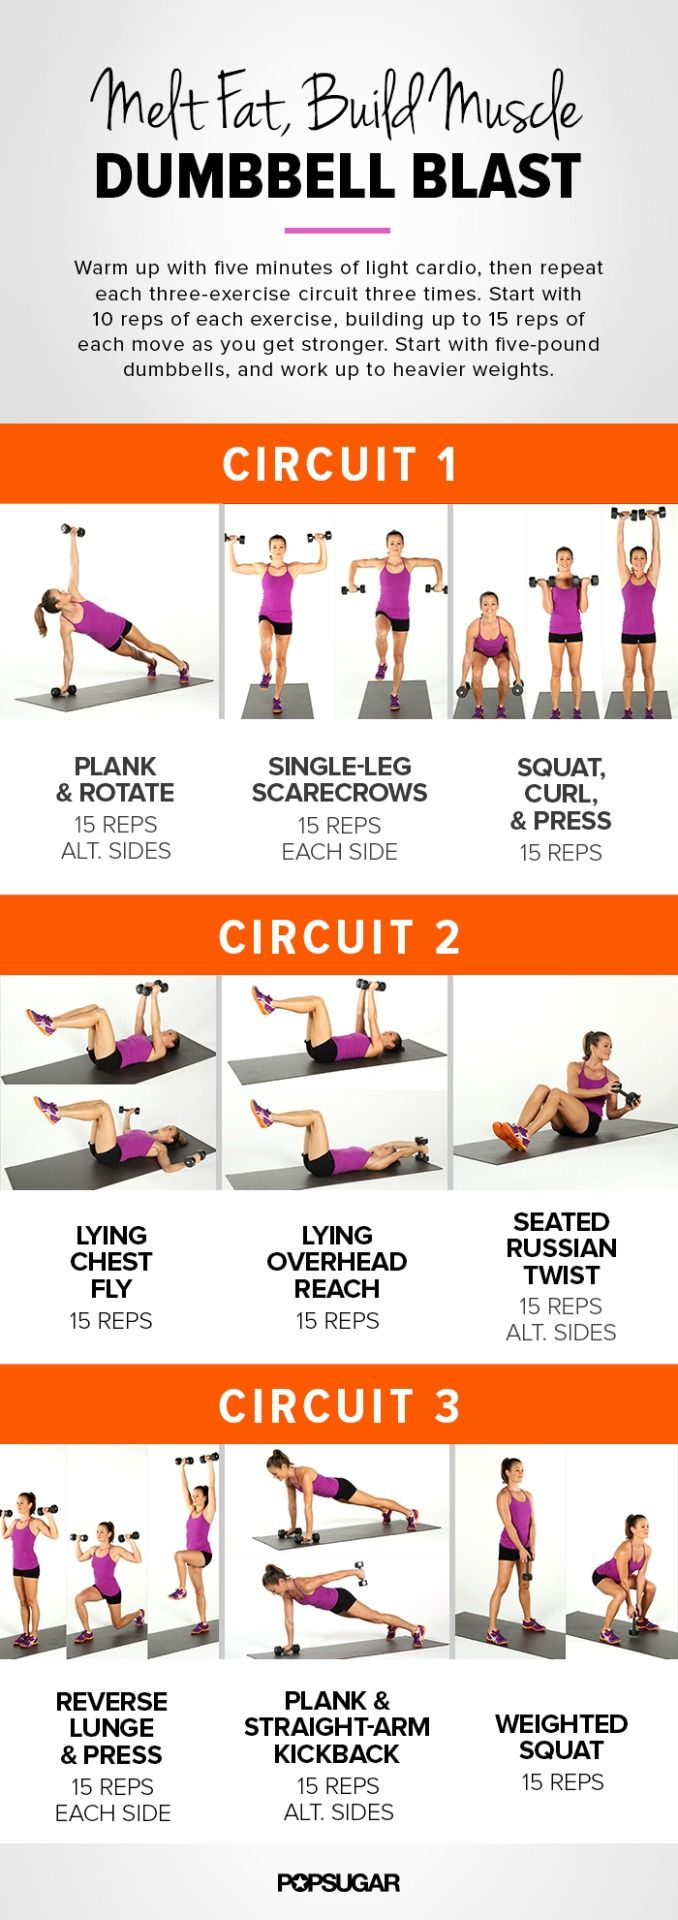 cardio and strength training. a little bit of lifting, pushing and squatting goes a long way